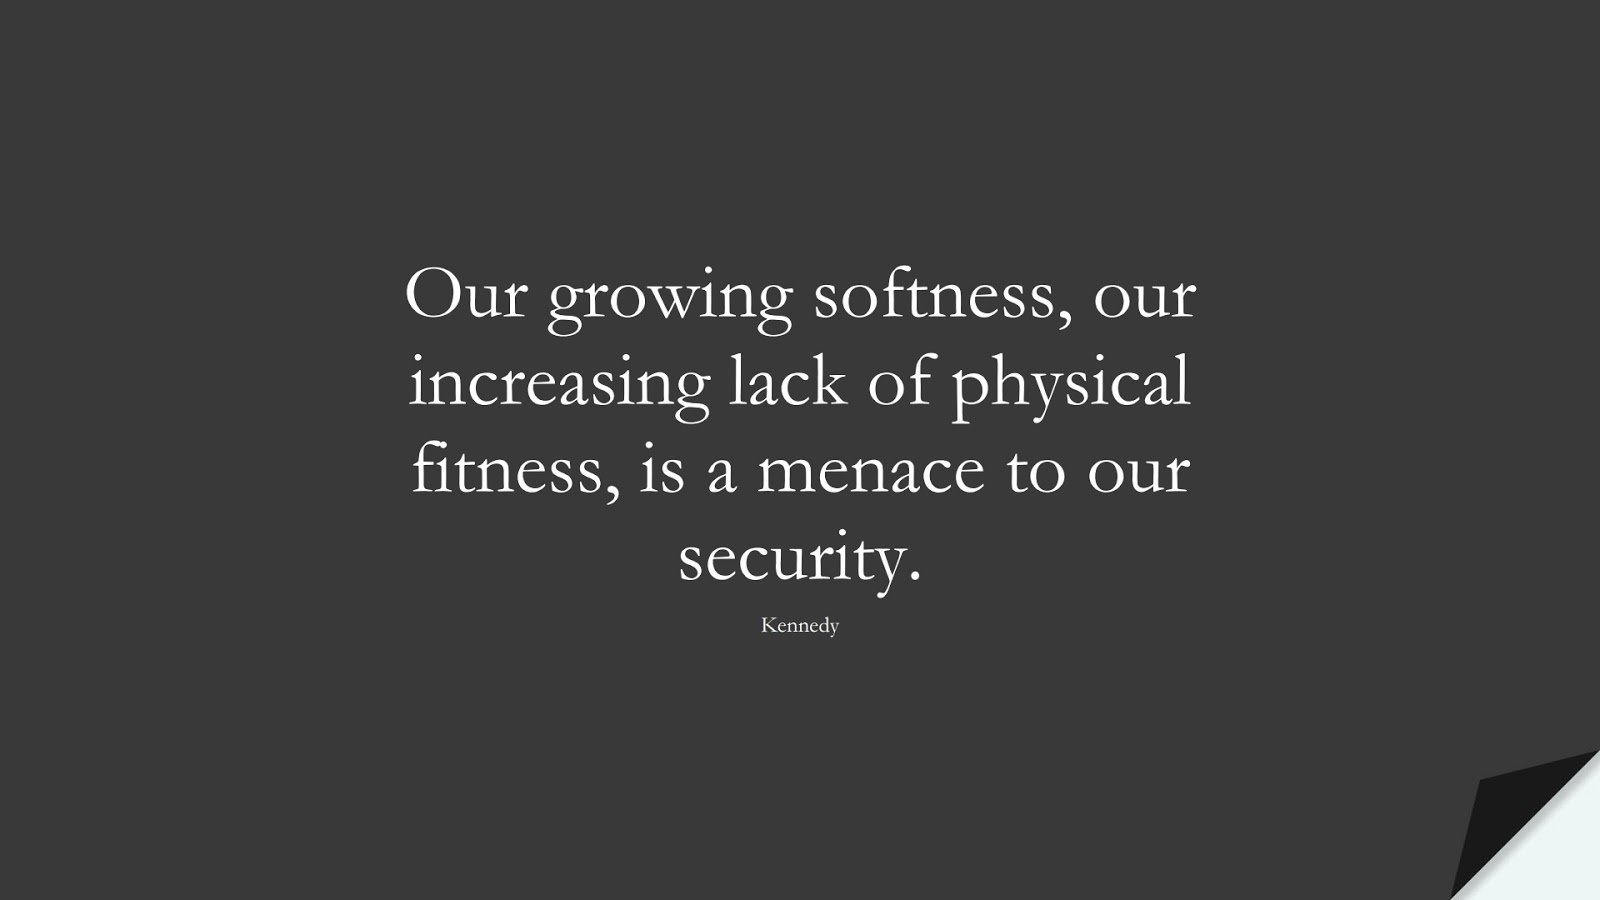 Our growing softness, our increasing lack of physical fitness, is a menace to our security. (Kennedy);  #HealthQuotes